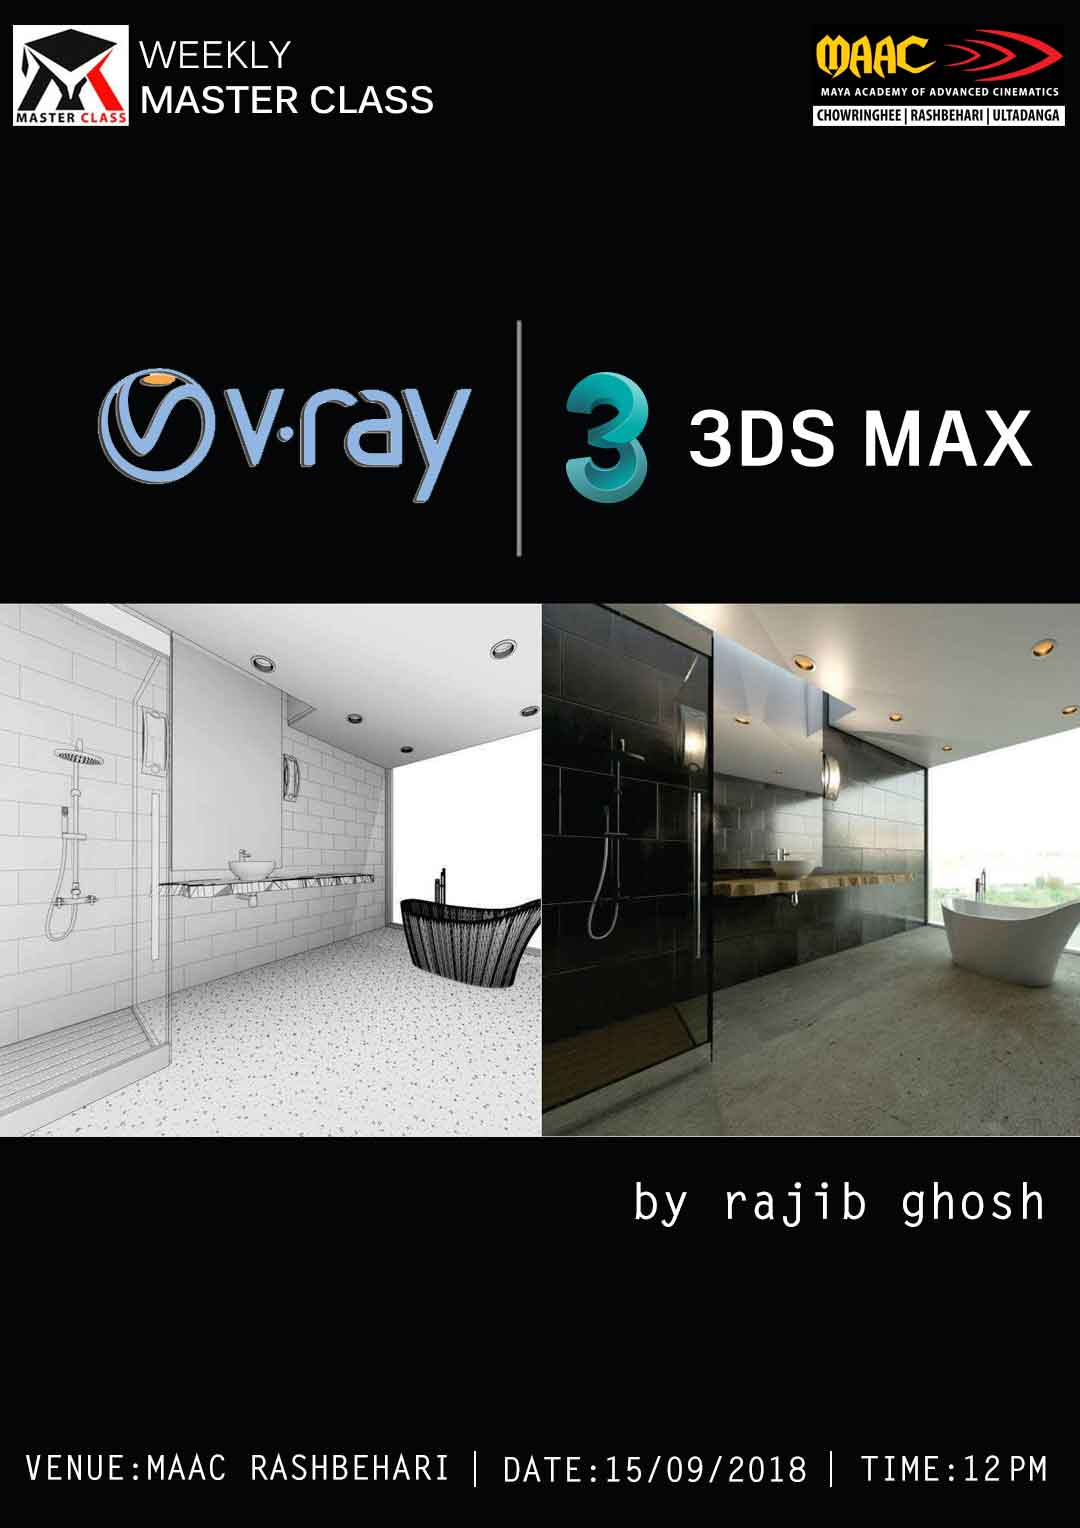 Weekly Master Class on V-Ray